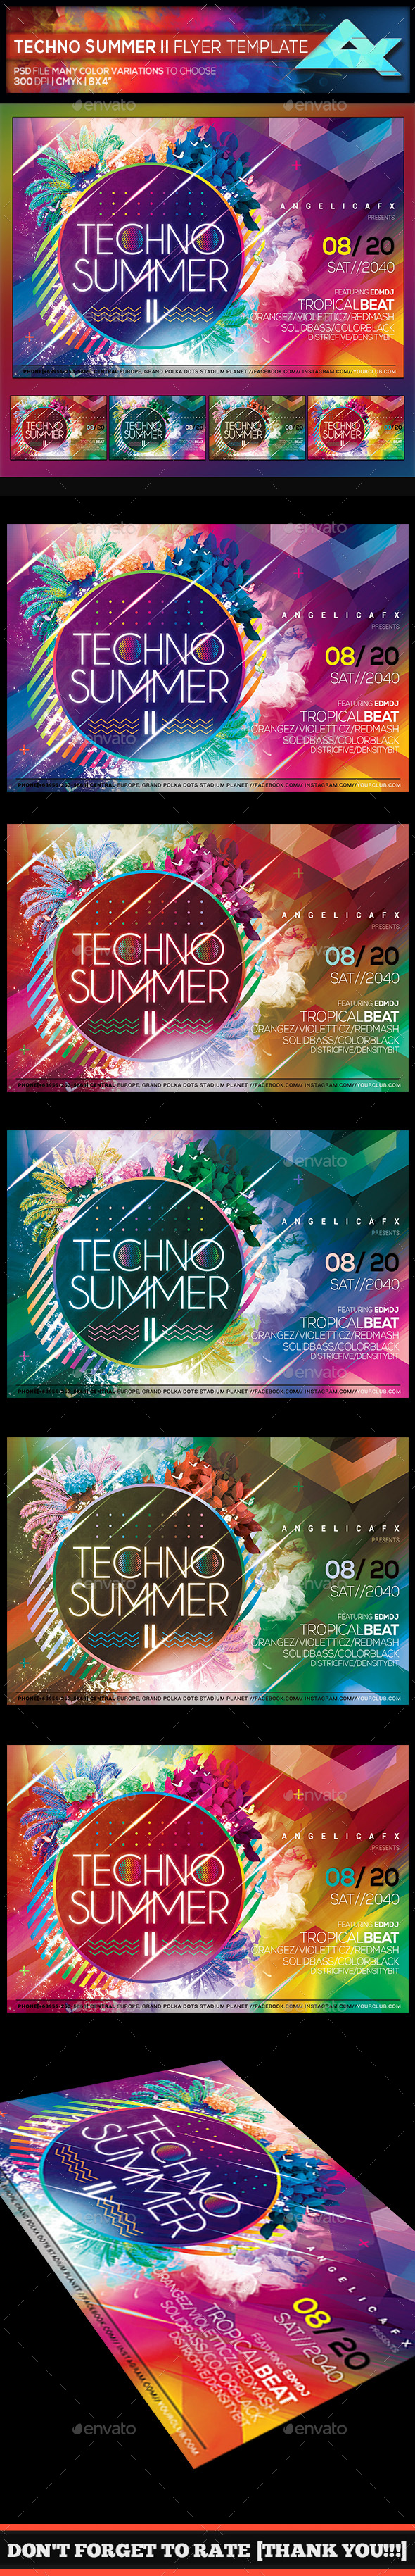 Techno Summer II Photoshop Flyer Template - Events Flyers